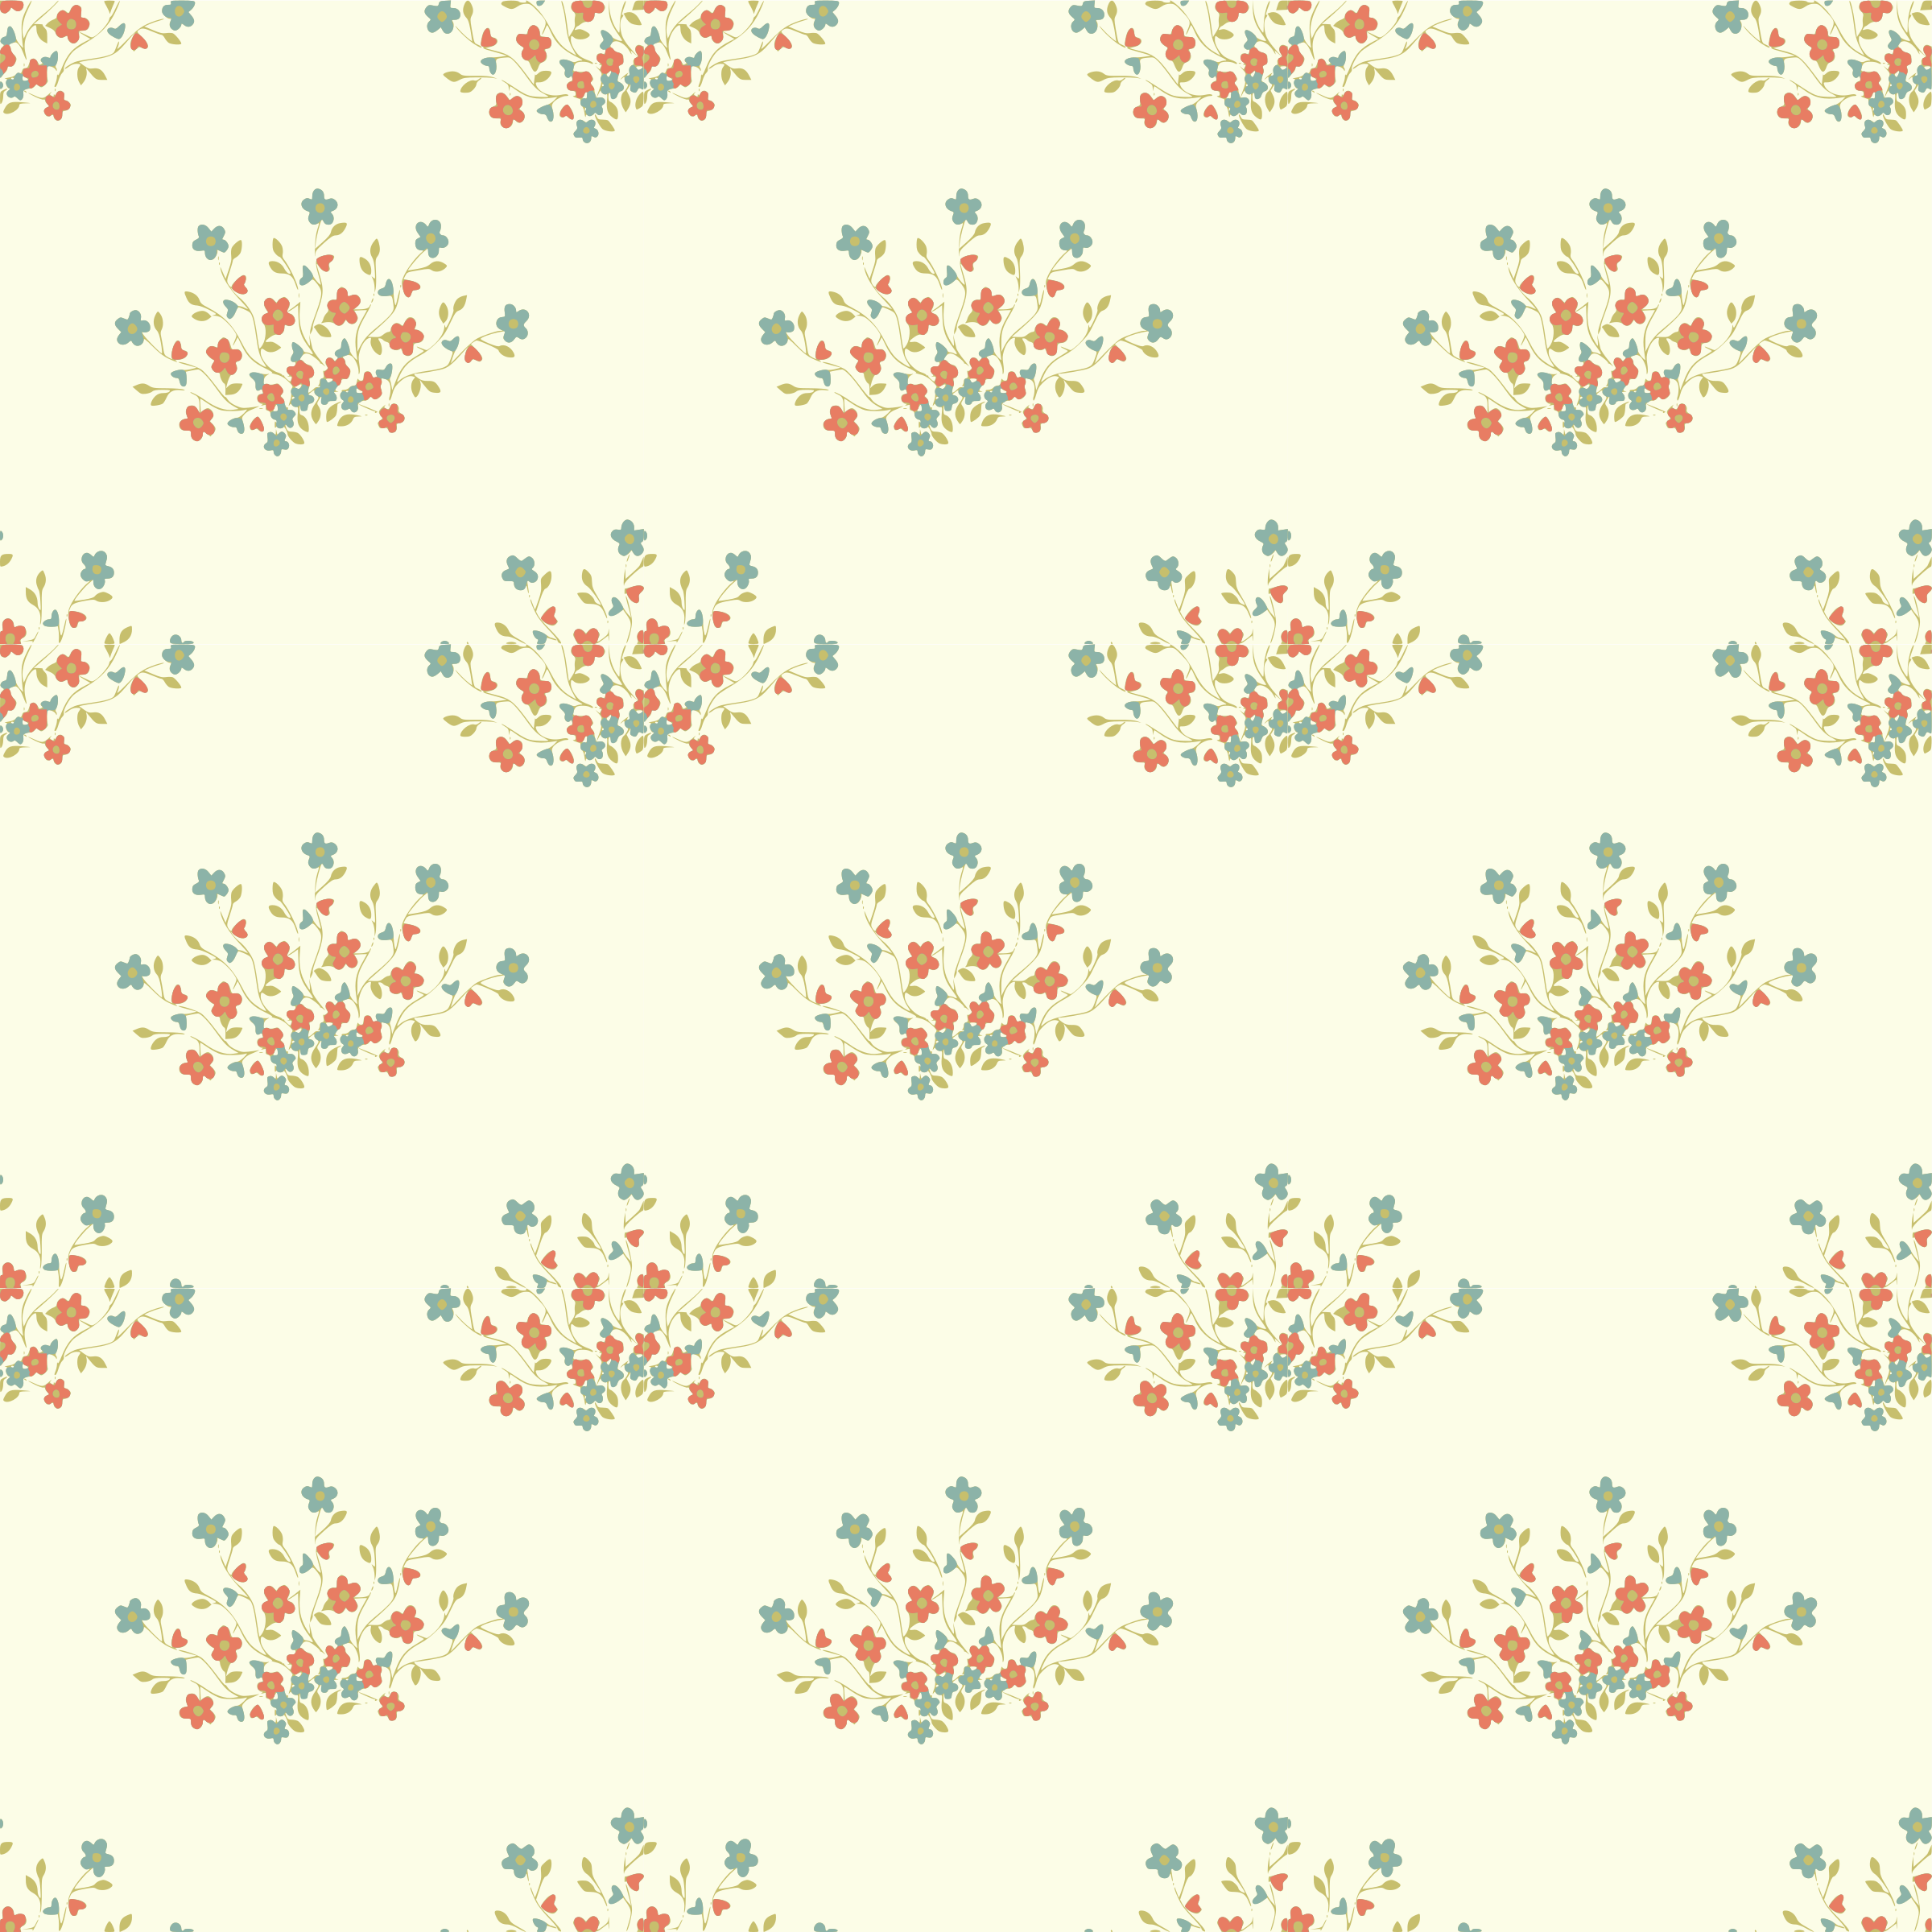 Flower Seamless Pattern By Yamachem